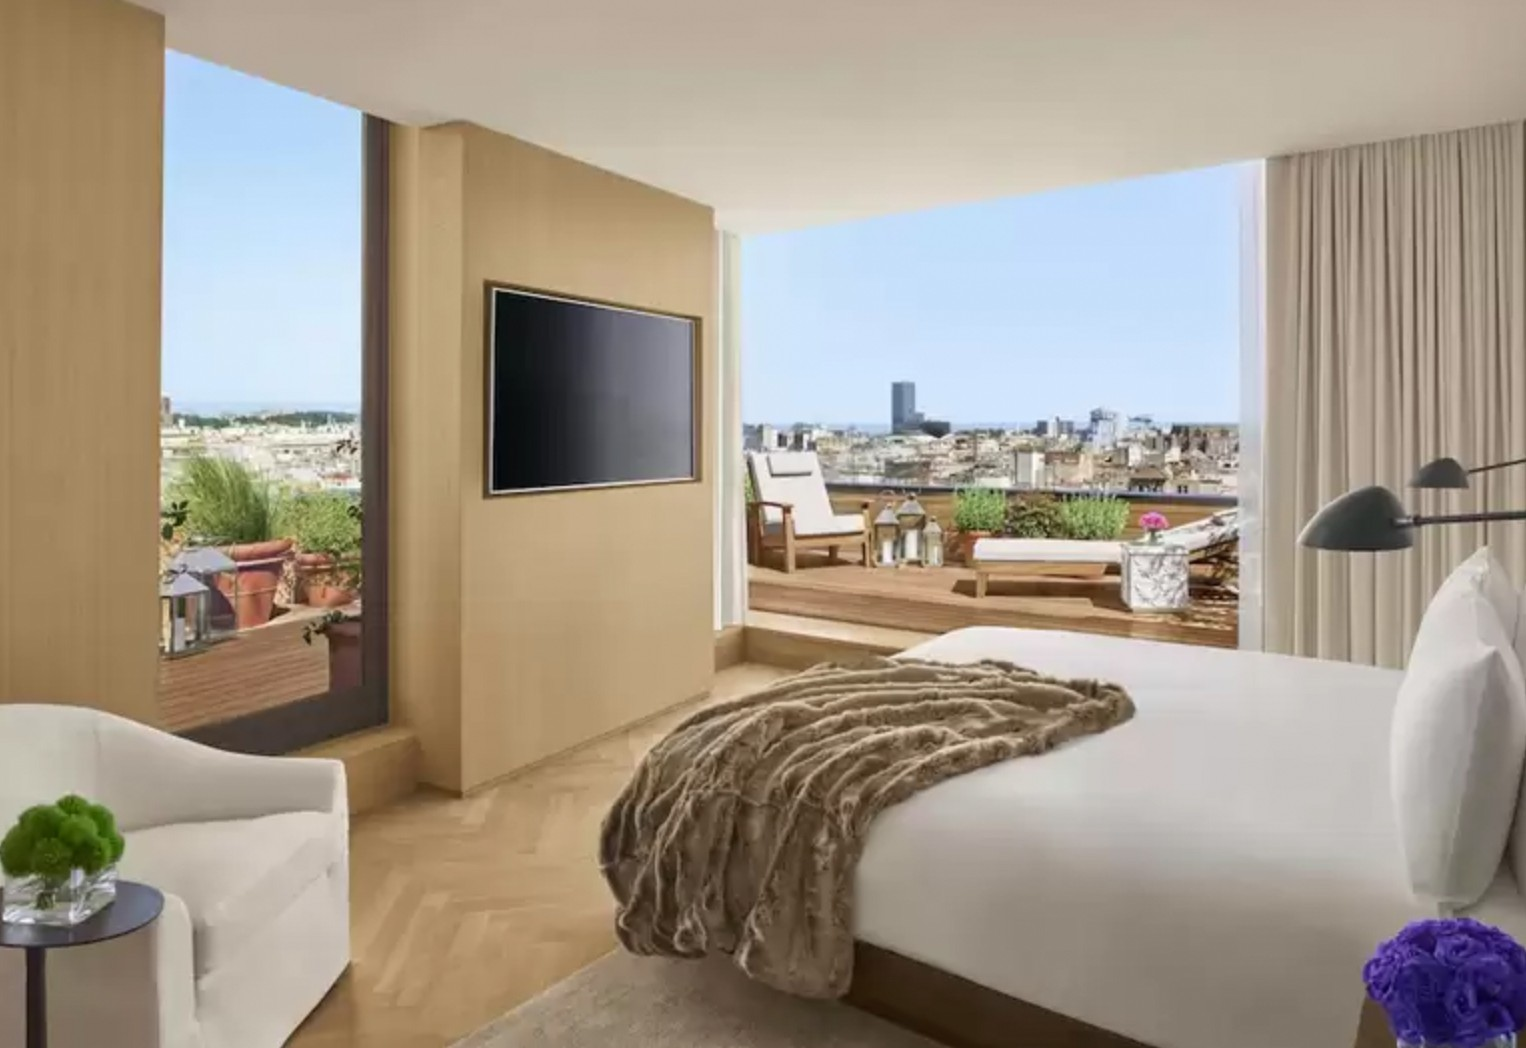 The Barcelona EDITION's rooms offer sweeping views